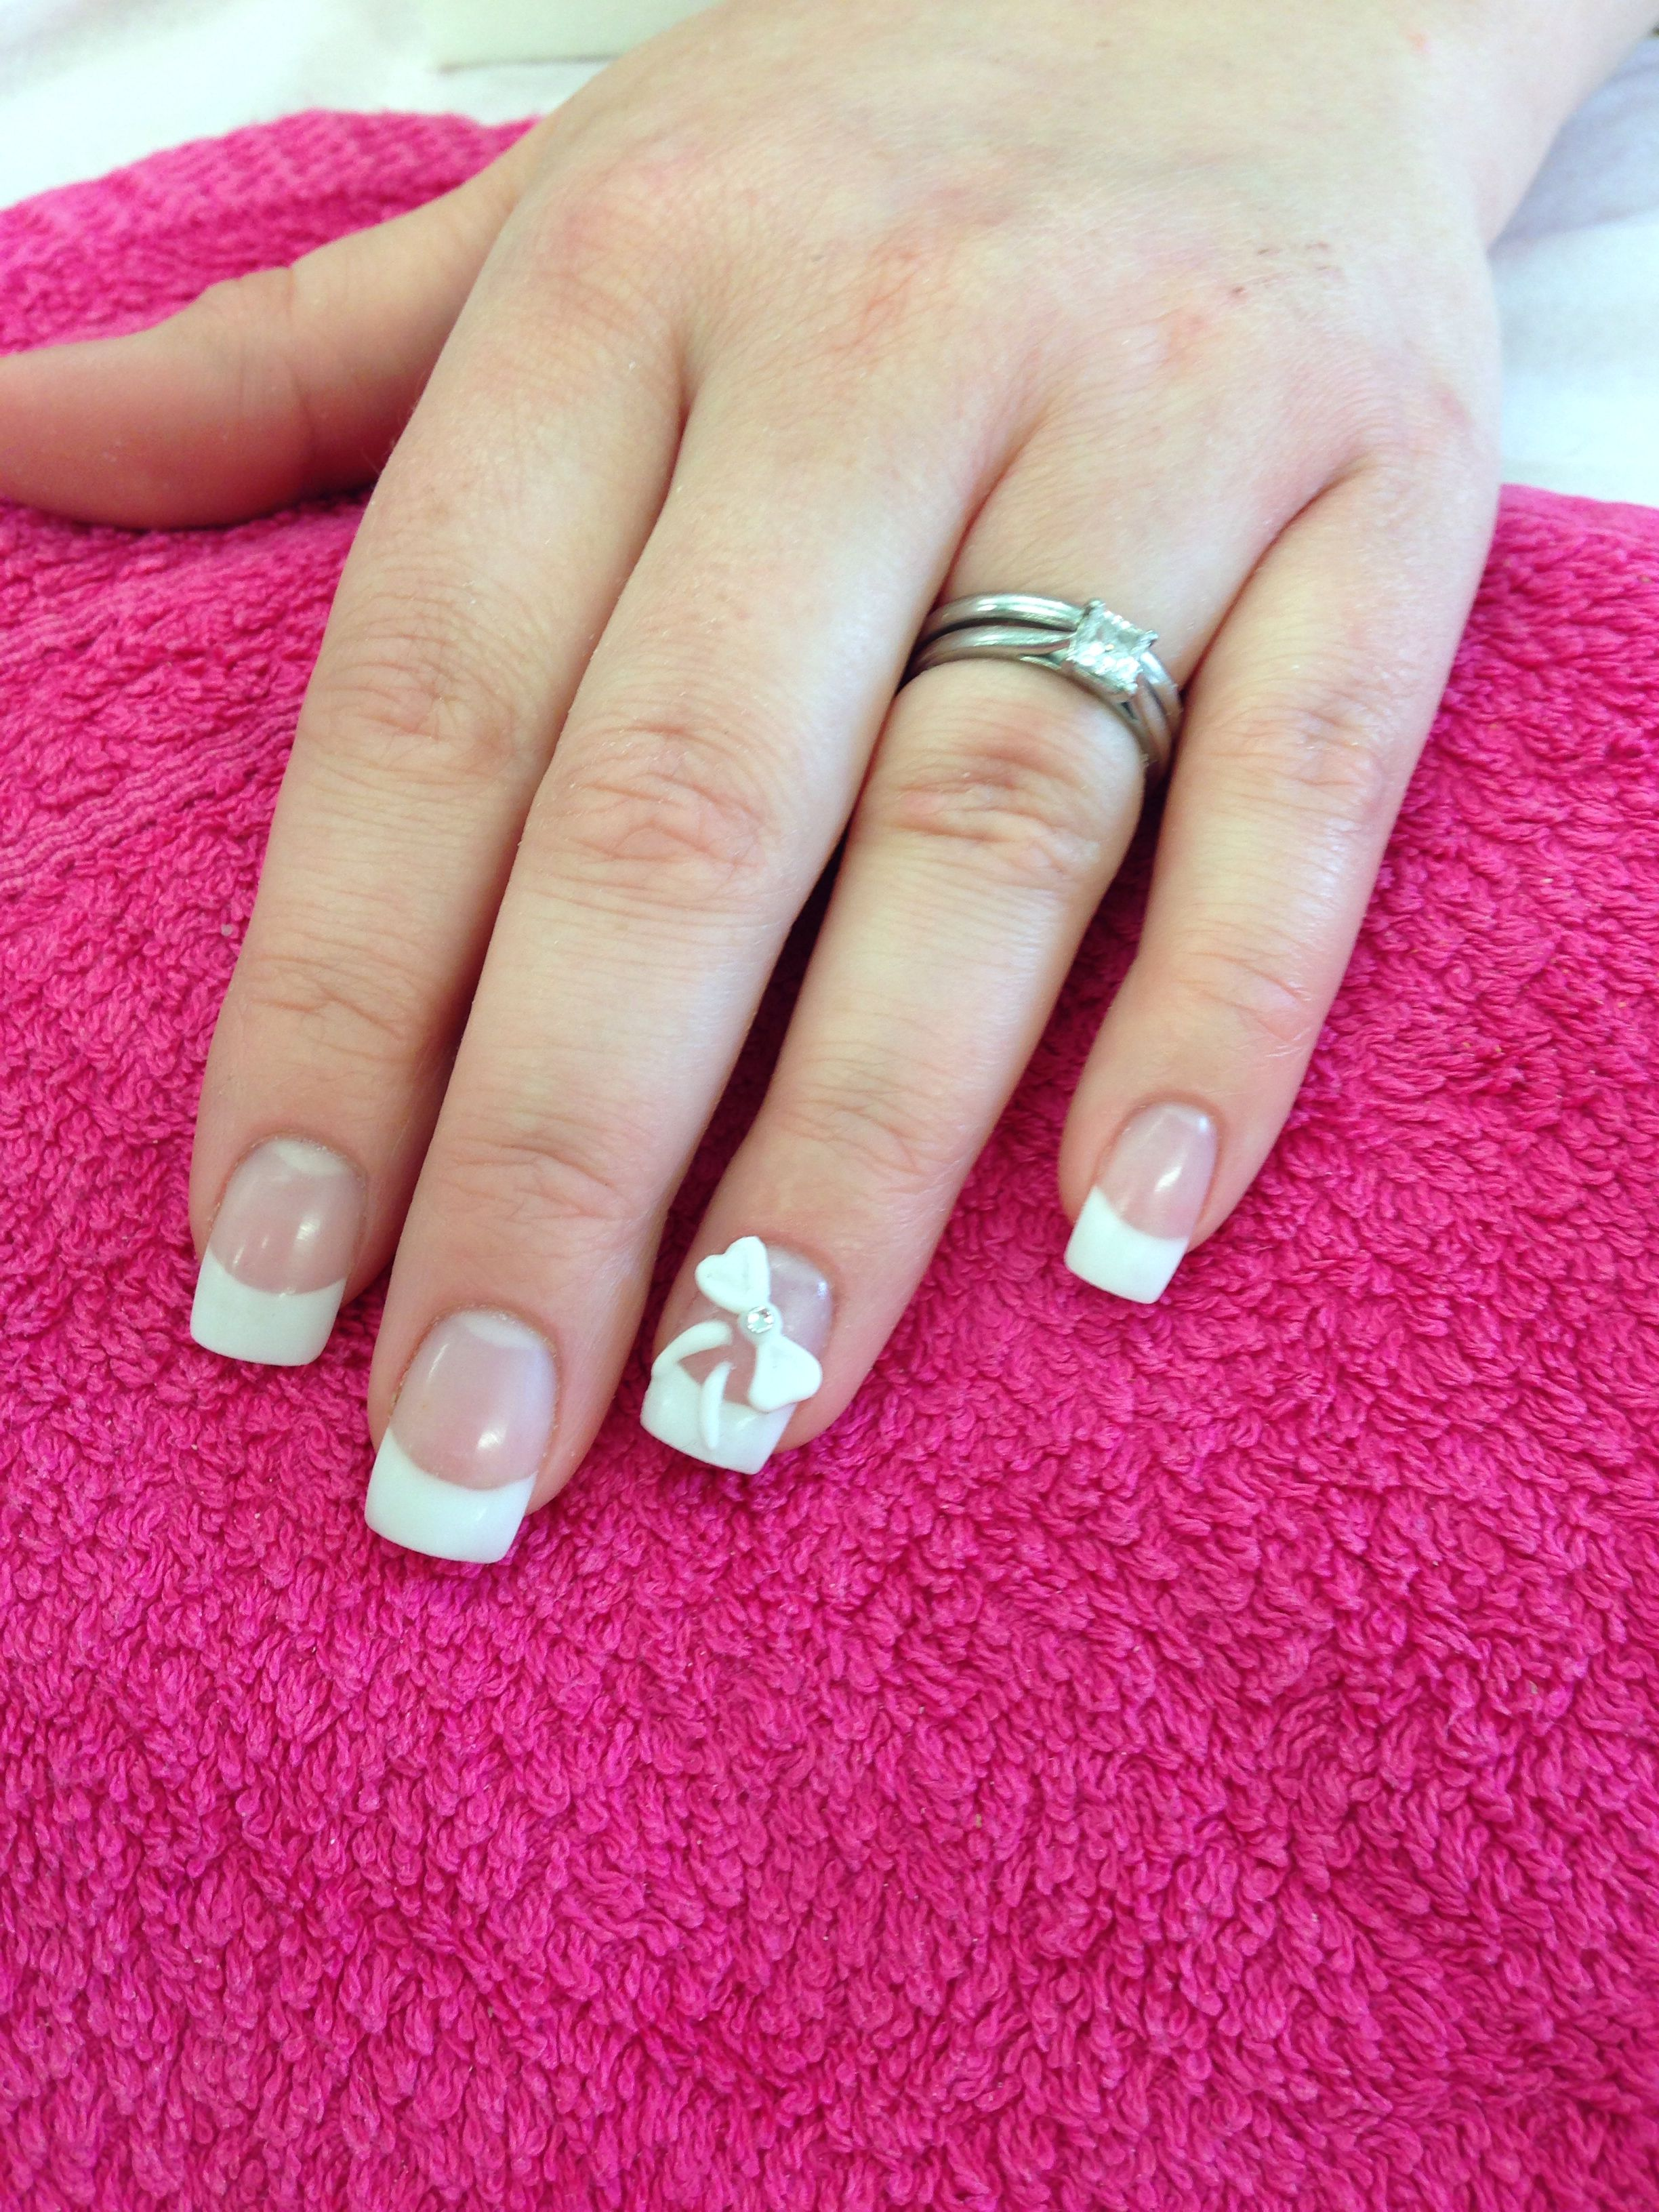 Acrylic French With Freehand 3d Nail Art Little Finger Sculpted